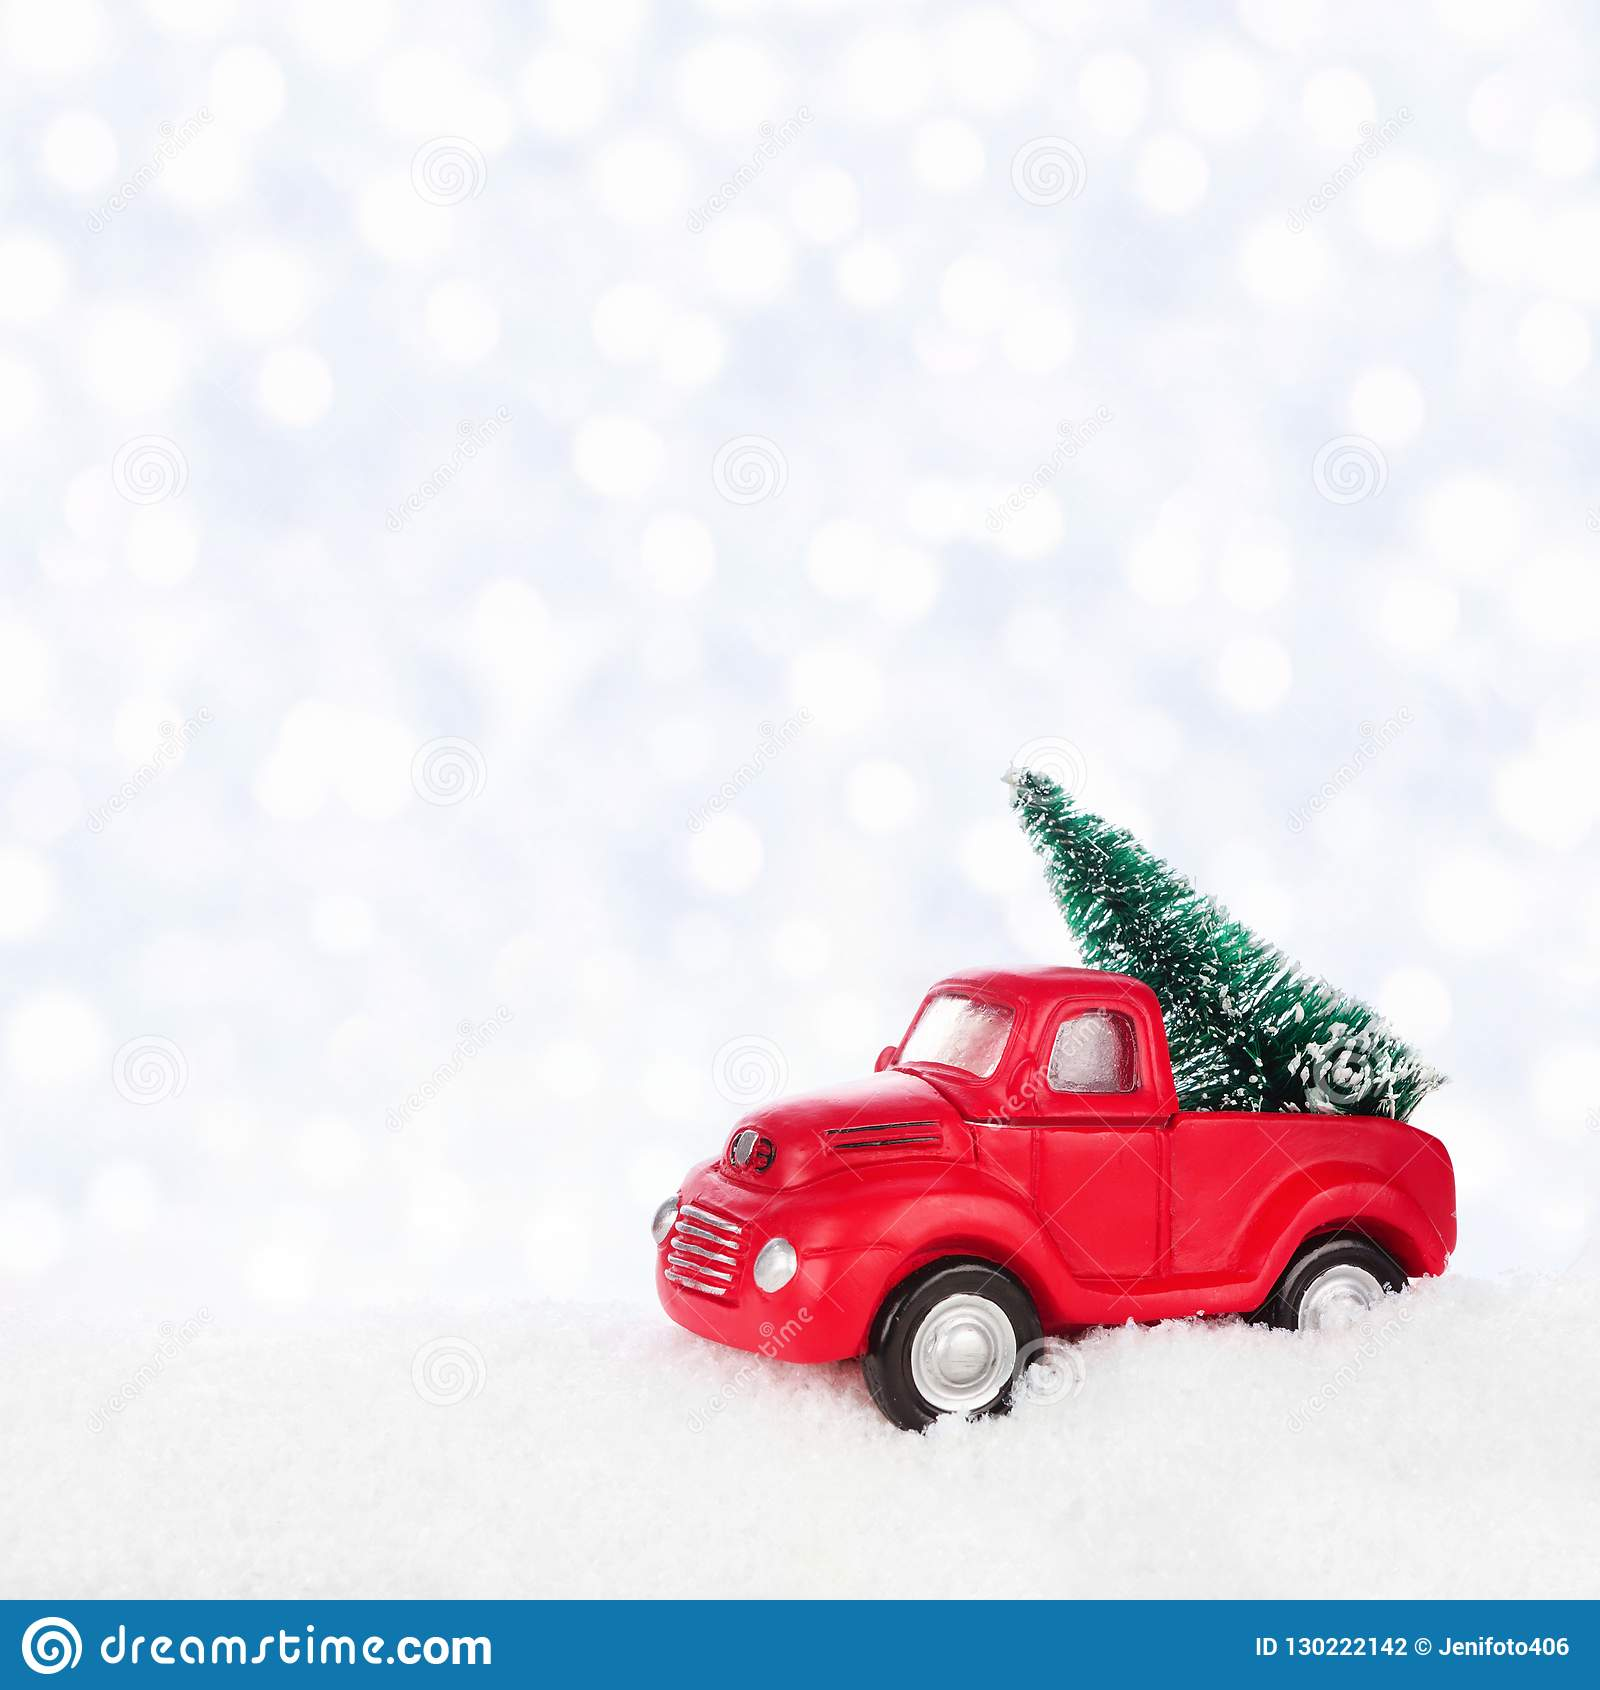 red toy truck christmas tree snow against silver twinkling light background 130222142